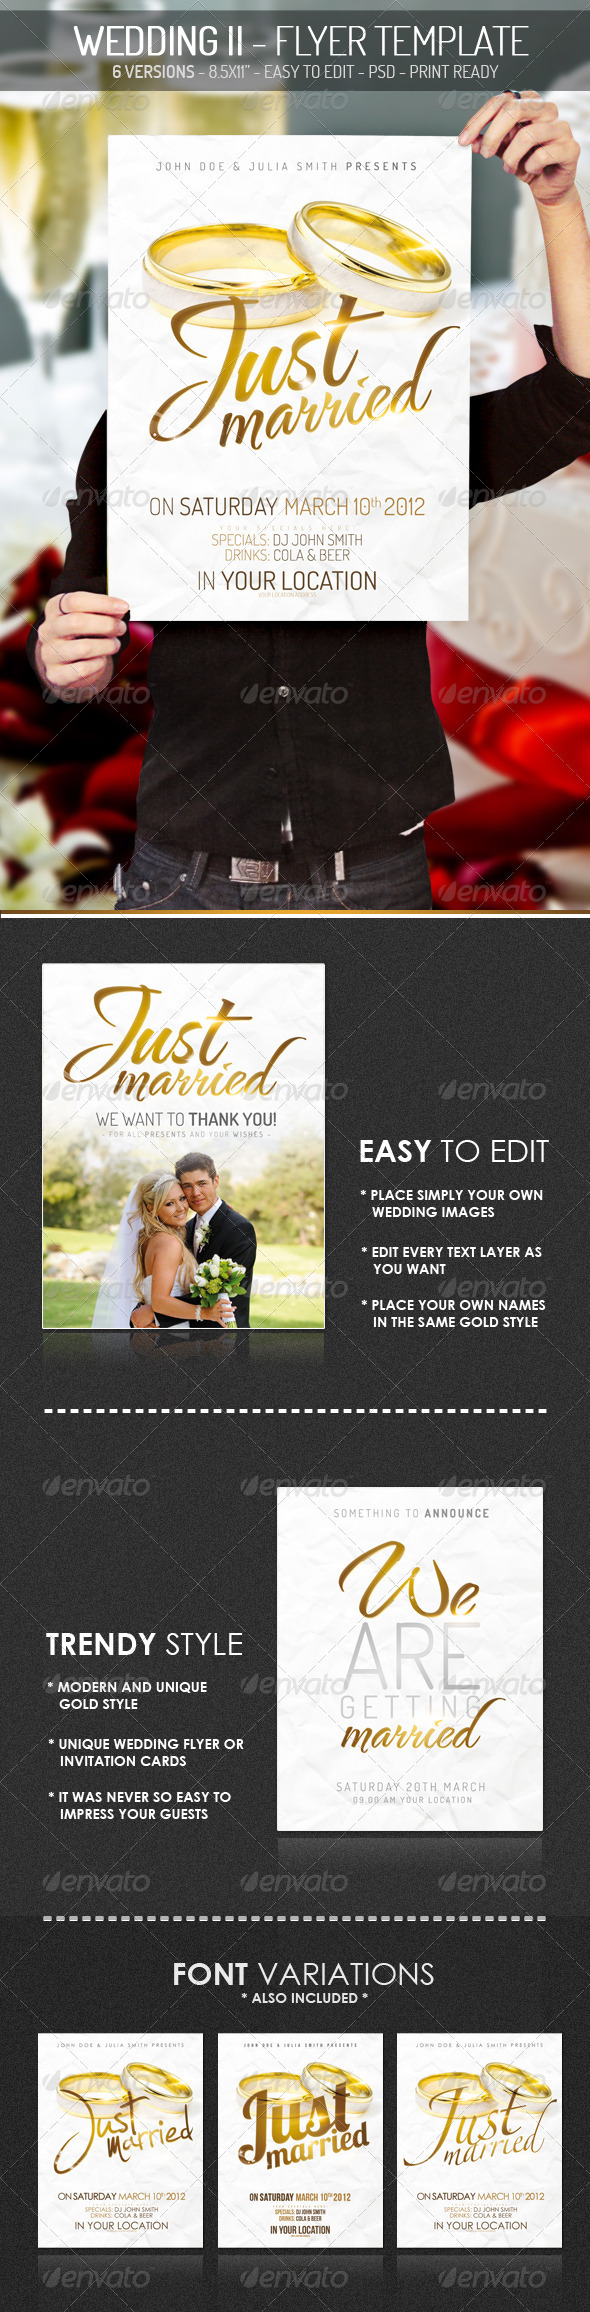 Wedding II Flyer Template